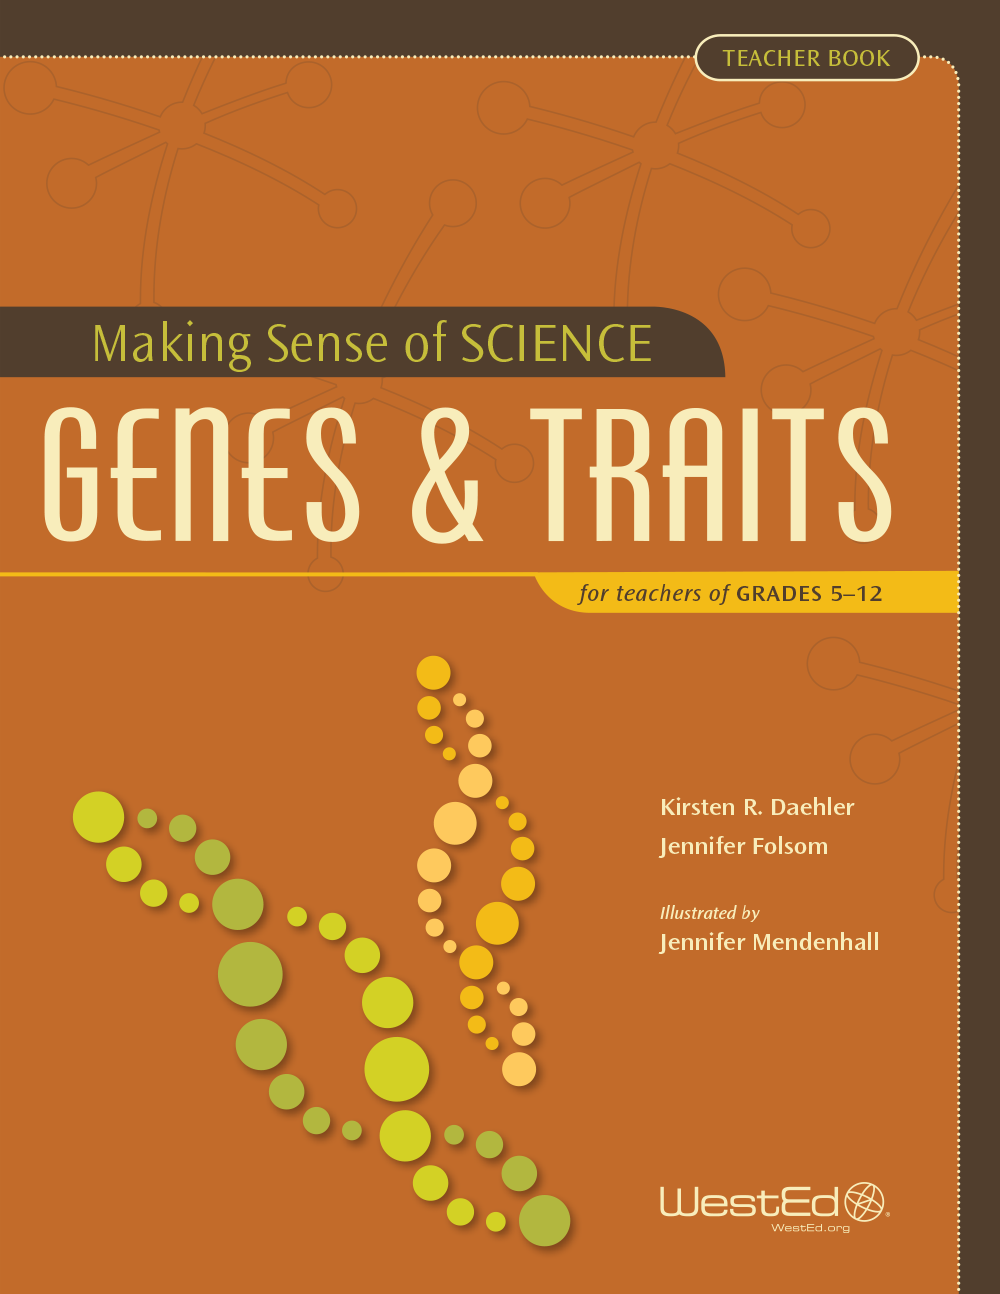 Cover image for Making Sense of Science: Genes Traits for Teachers of Grades 5-12 Teacher Book Bundle